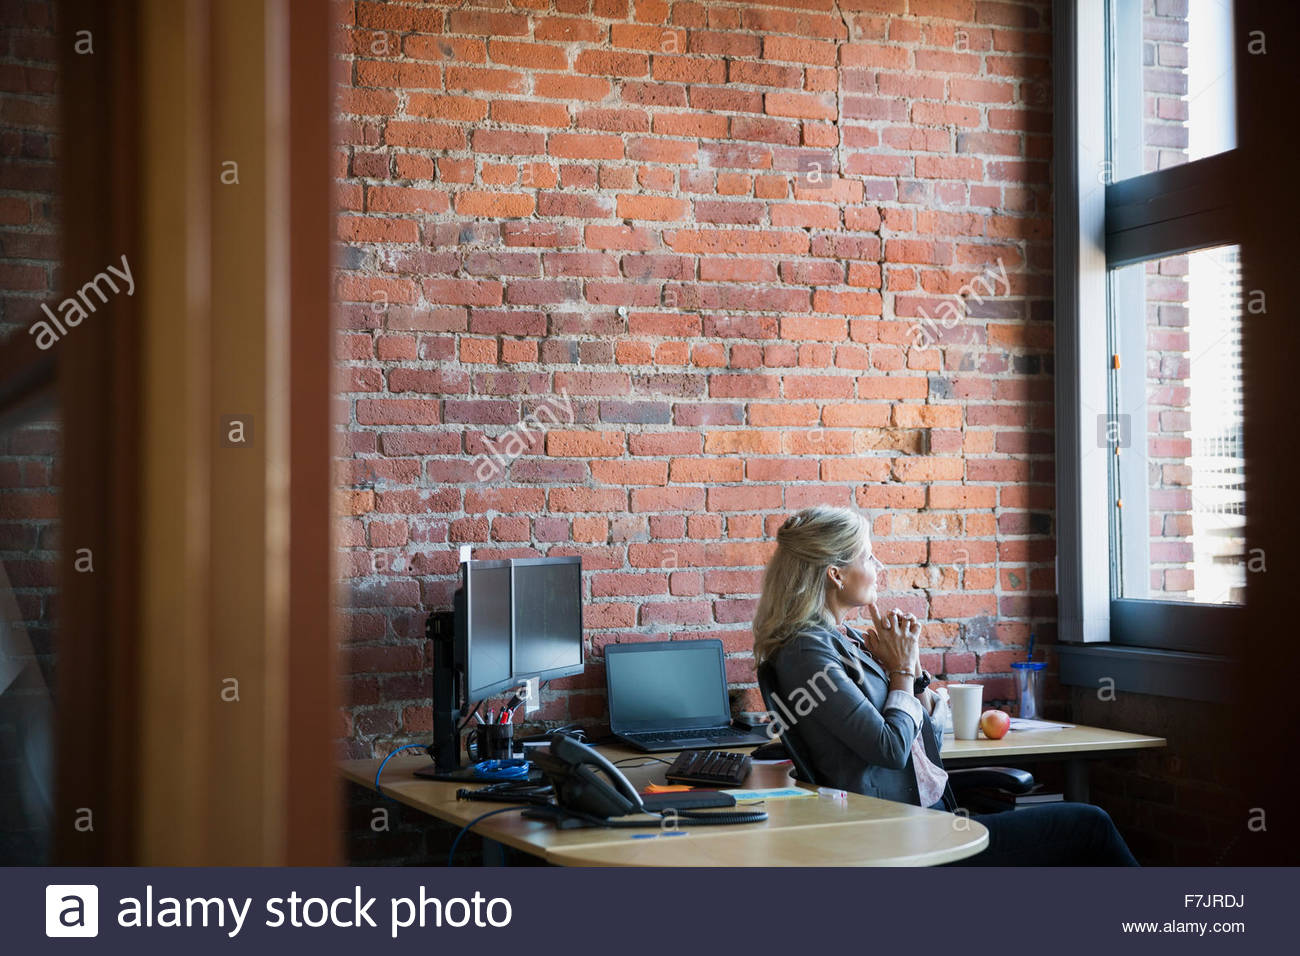 Pensive businesswoman looking out office window Photo Stock